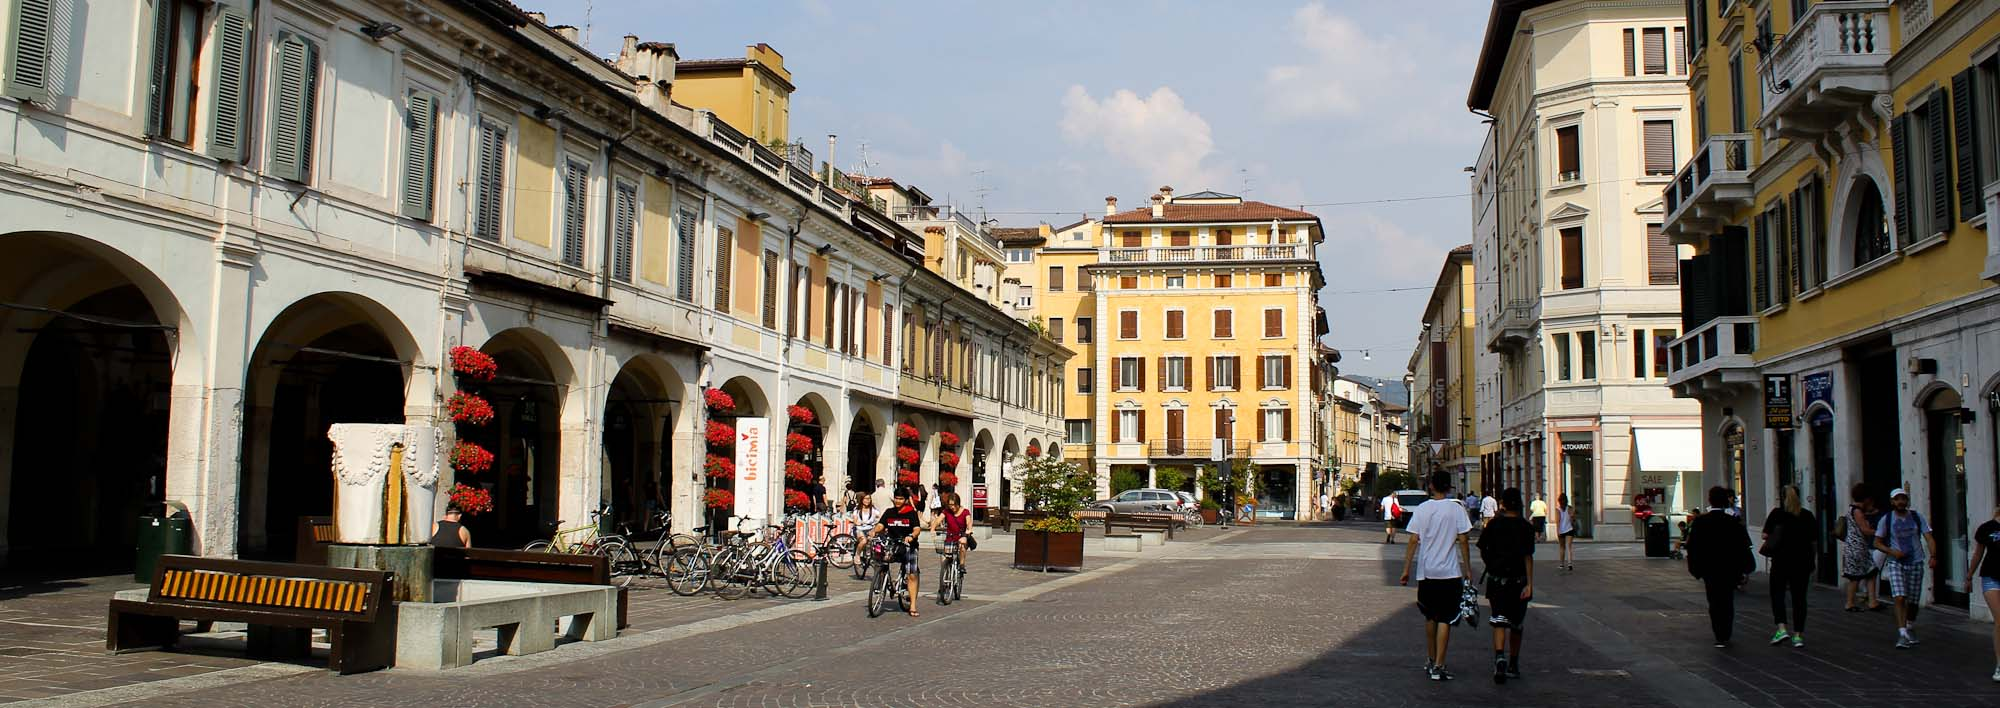 Things to See in Brescia Corso Guizeppe Zanardelli- Italian Notes